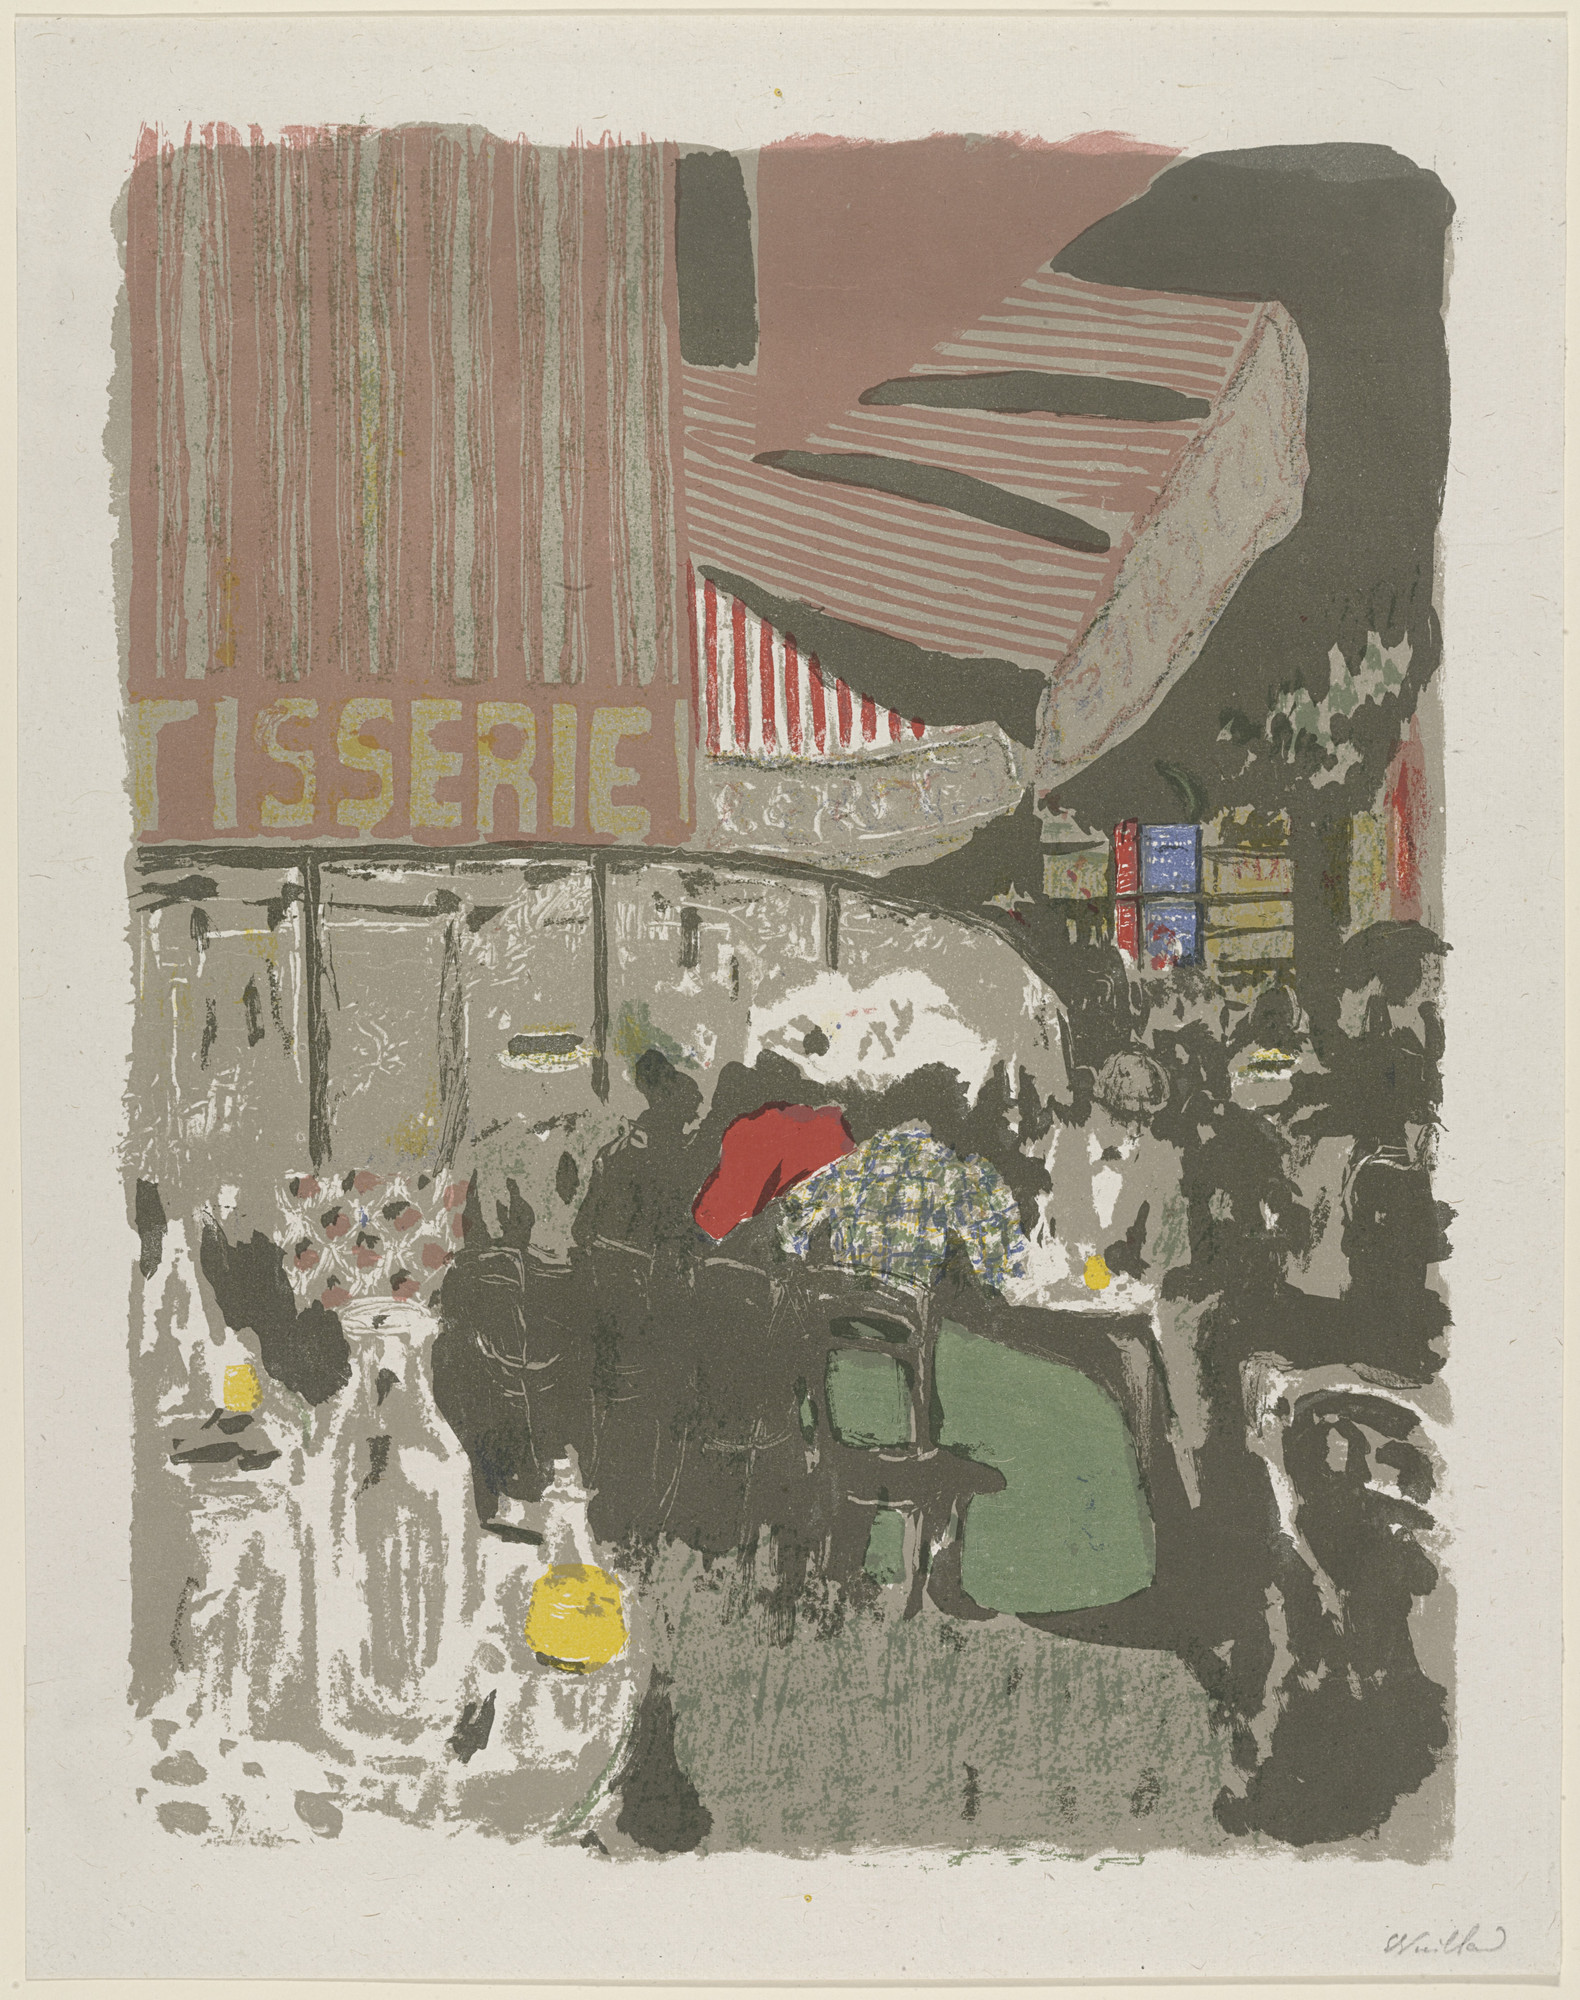 Édouard Vuillard. The Pastry Shop (La Patisserie) from Landscapes and Interiors (Paysages et intérieurs). 1899